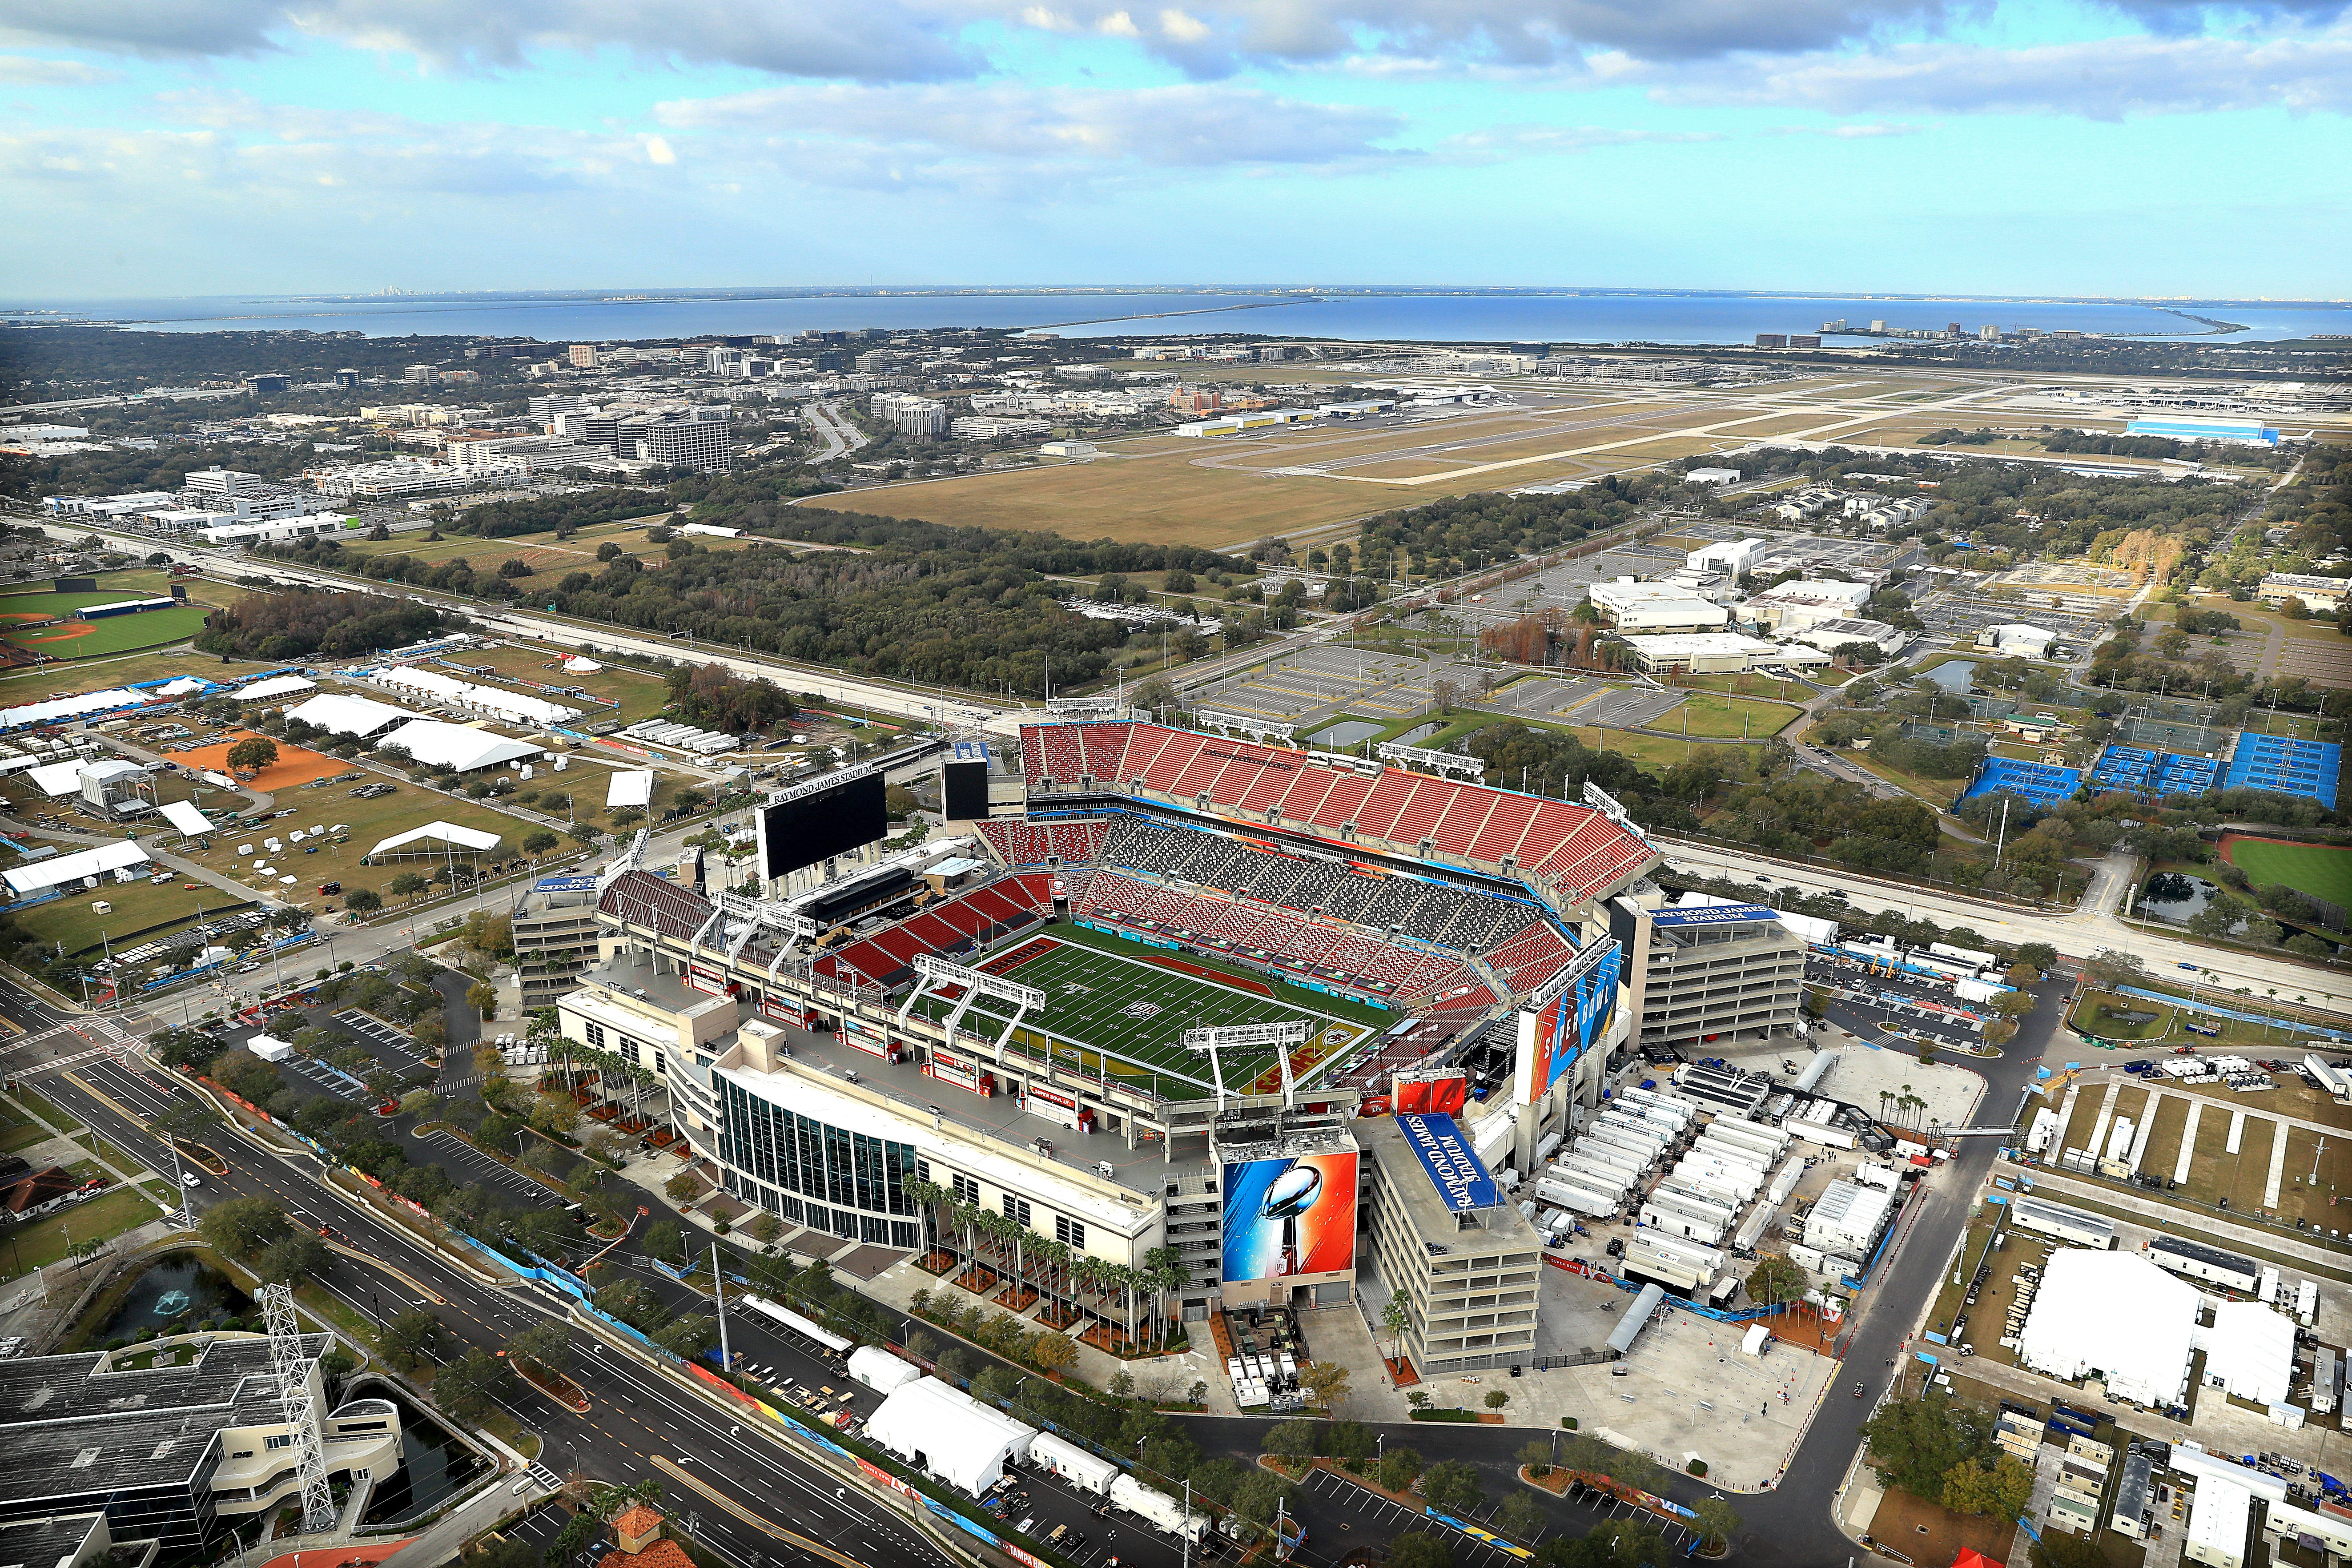 An aerial view of Raymond James Stadium ahead of Super Bowl LV.